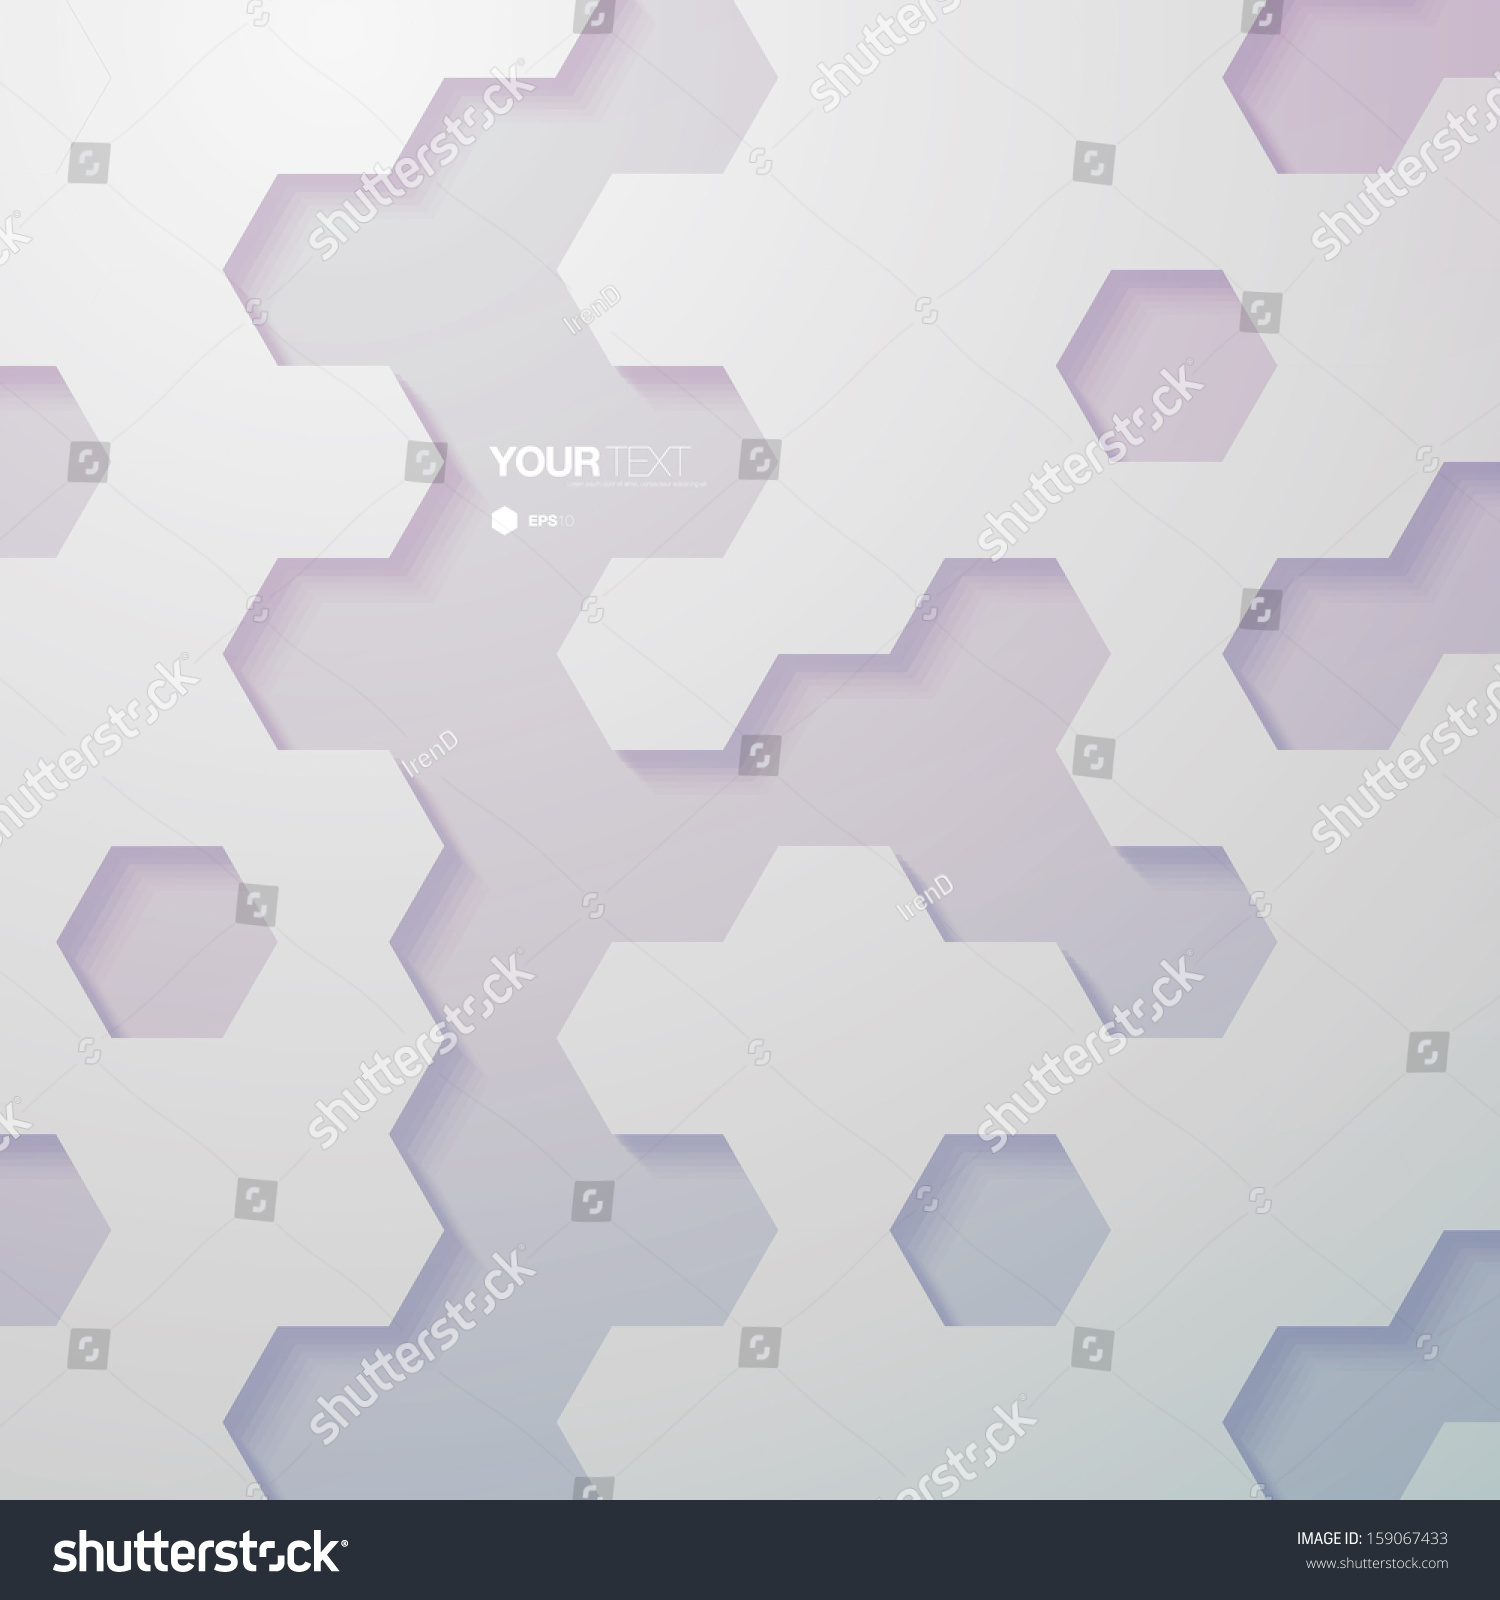 Abstract Vintage Color Hexagon Pattern Design Stock Vector ...